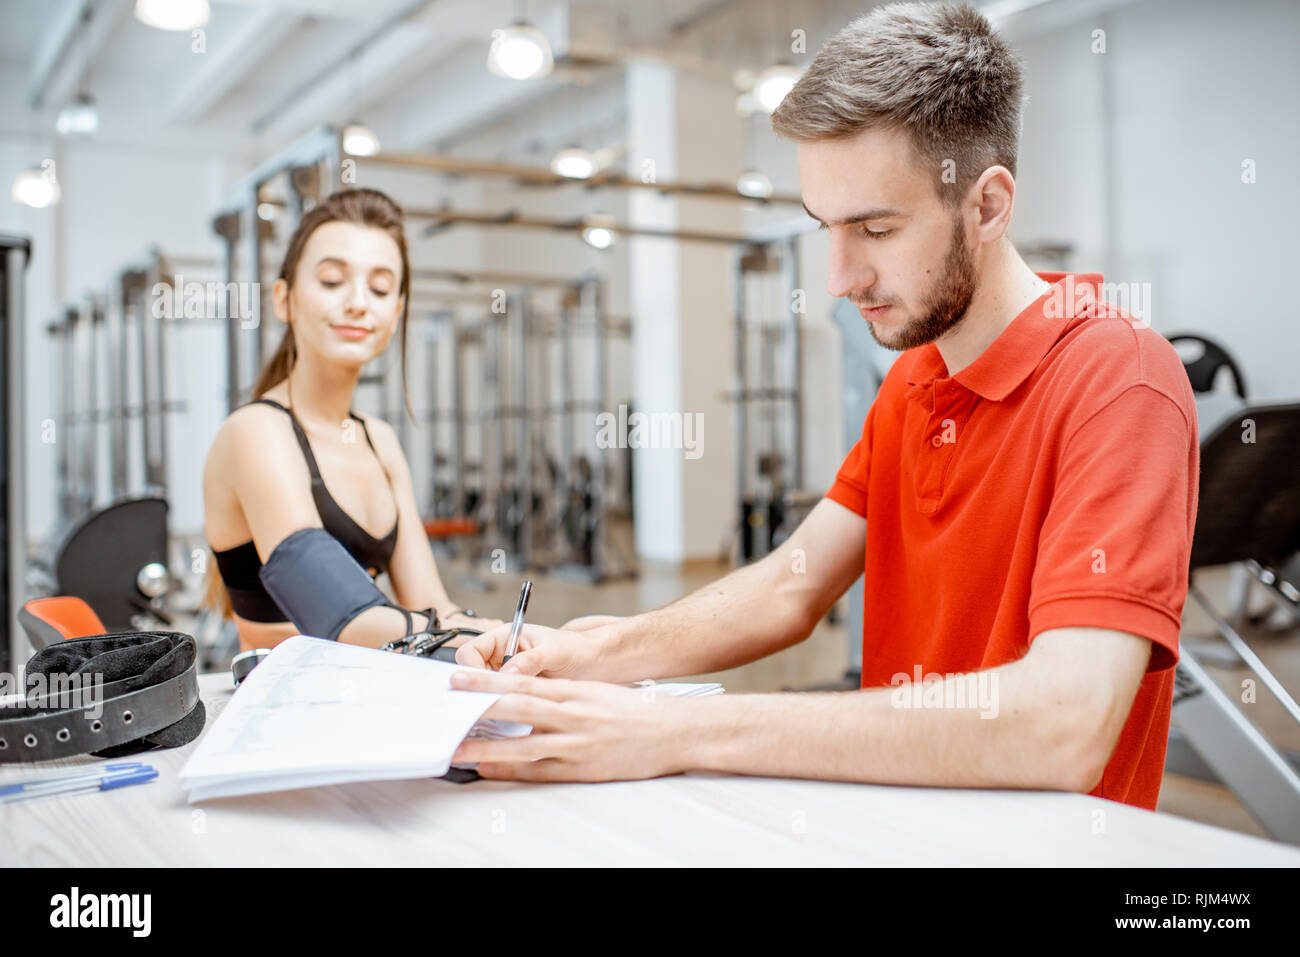 Man as a rehab in red uniform measuring pressure to a young woman sitting at the rehabilitation gym - Stock Image